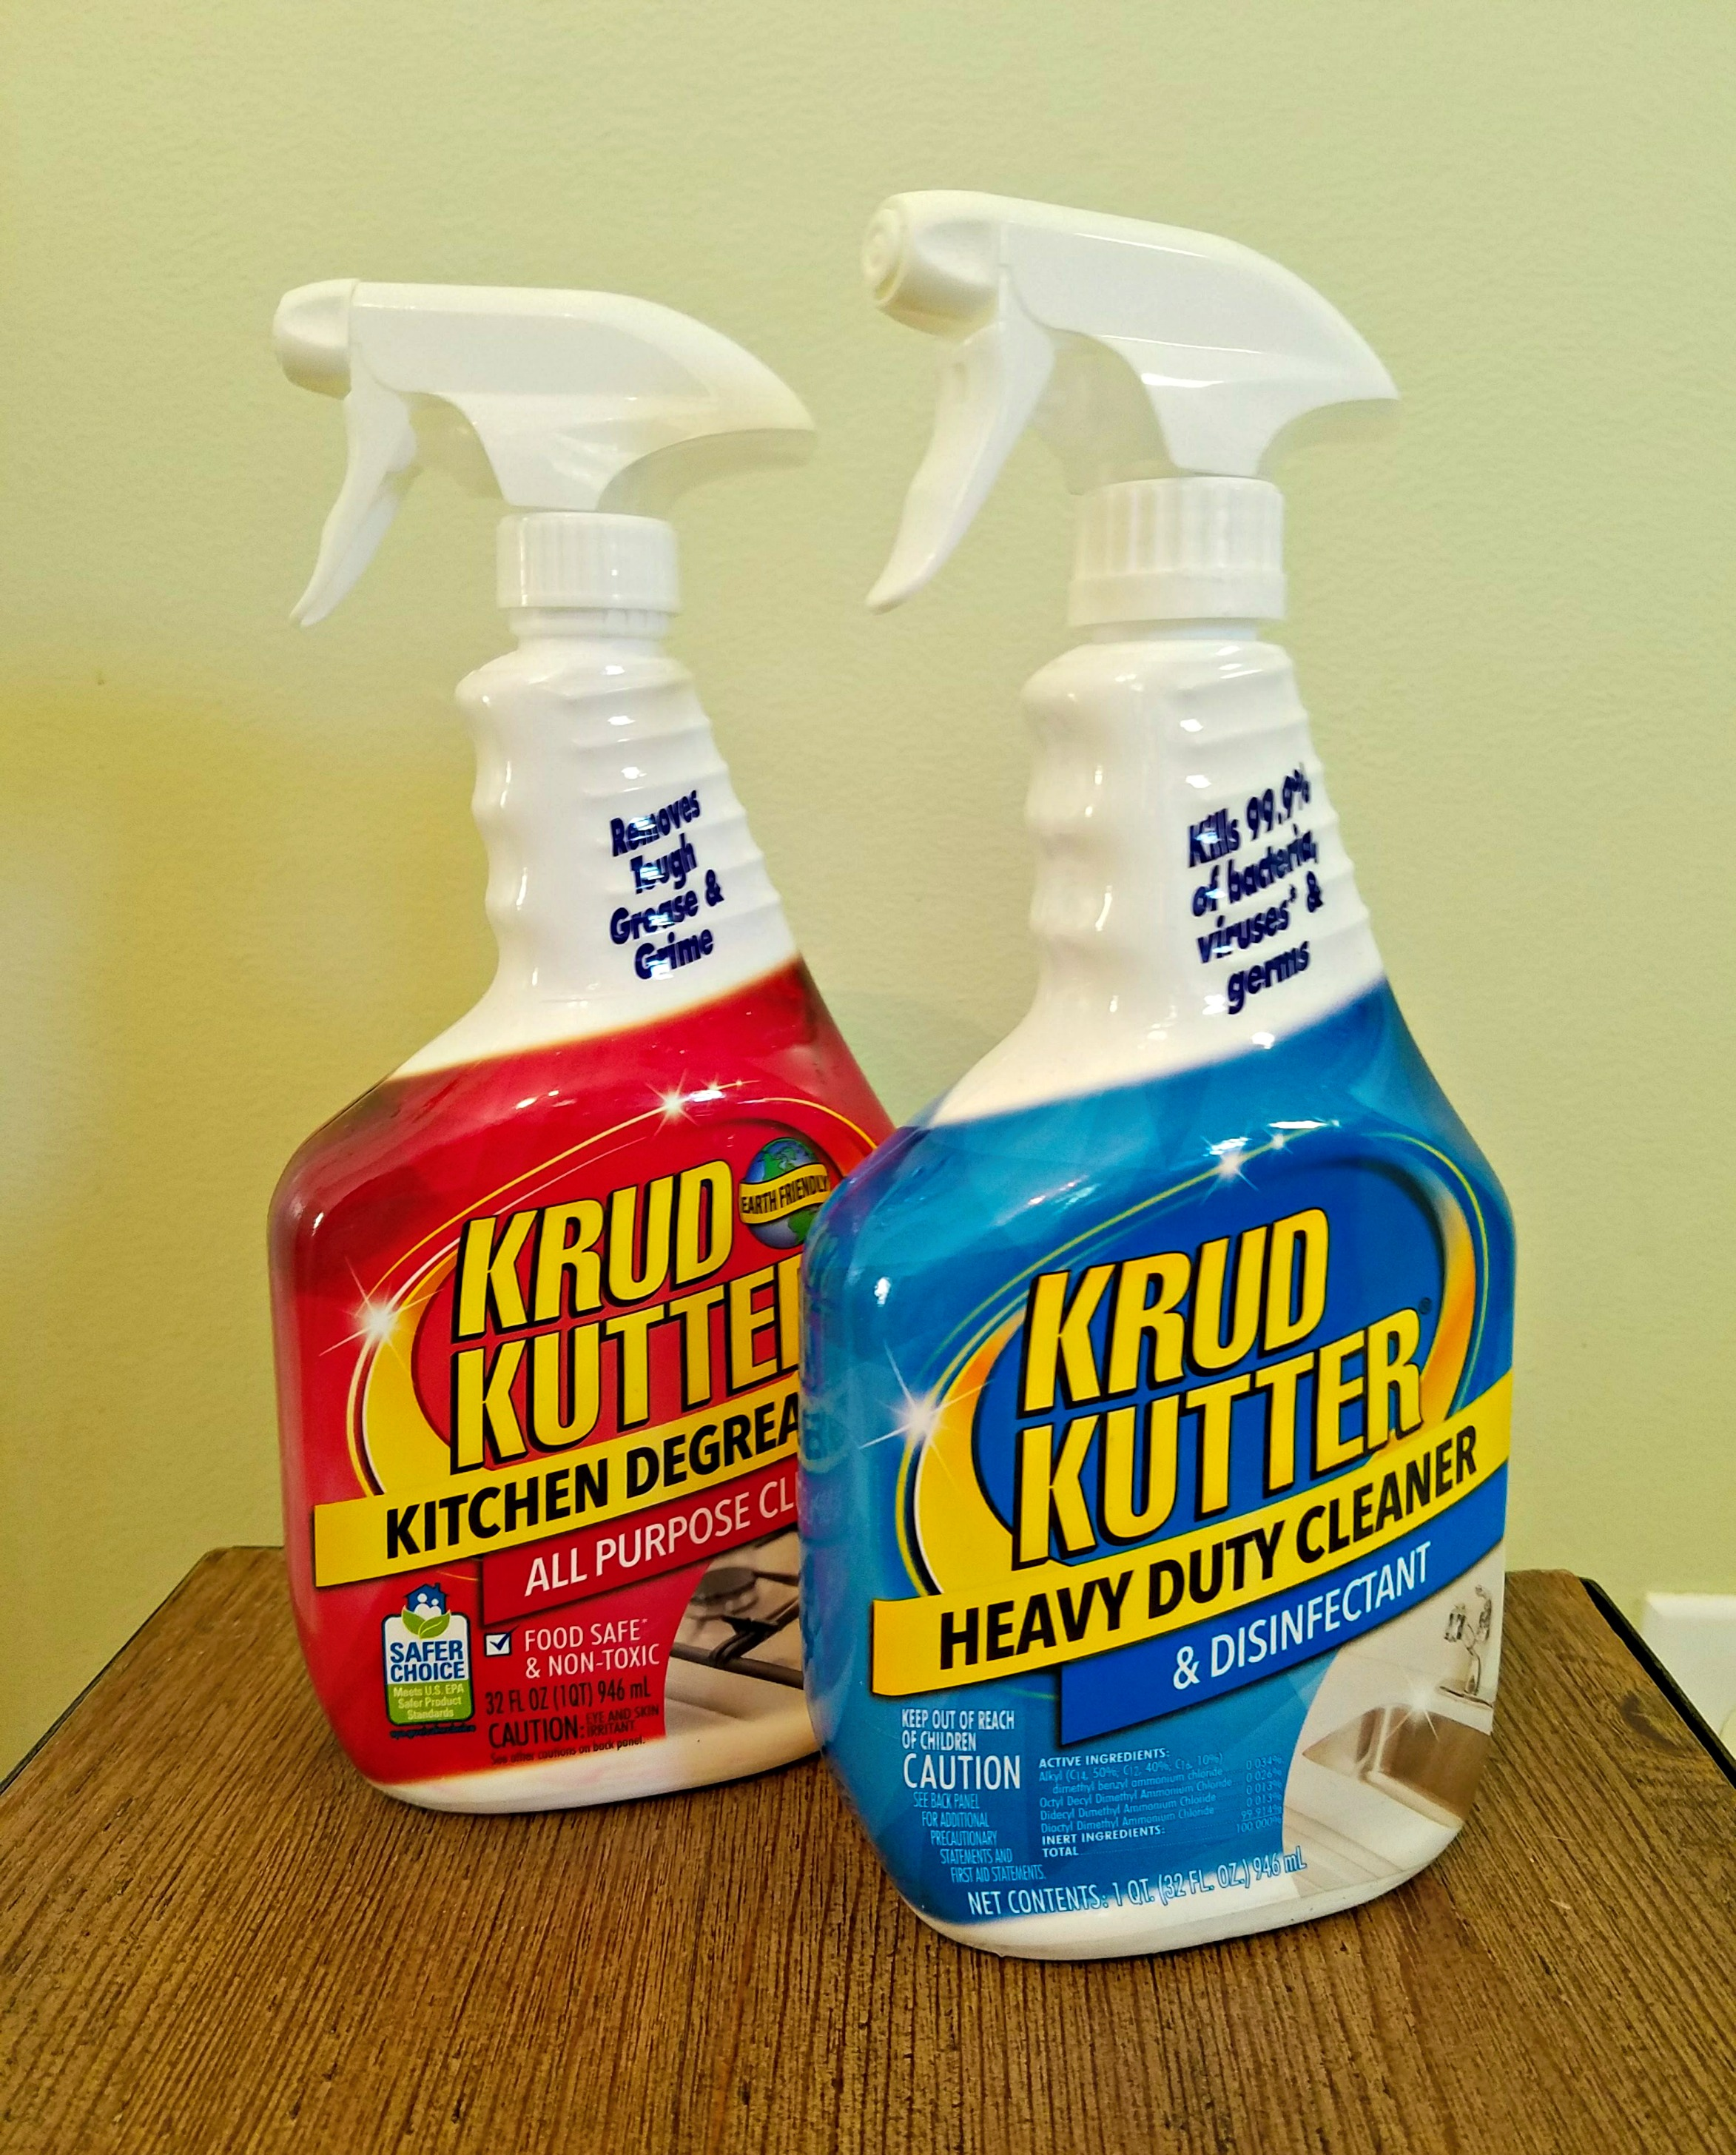 Krud Kutter cleaners